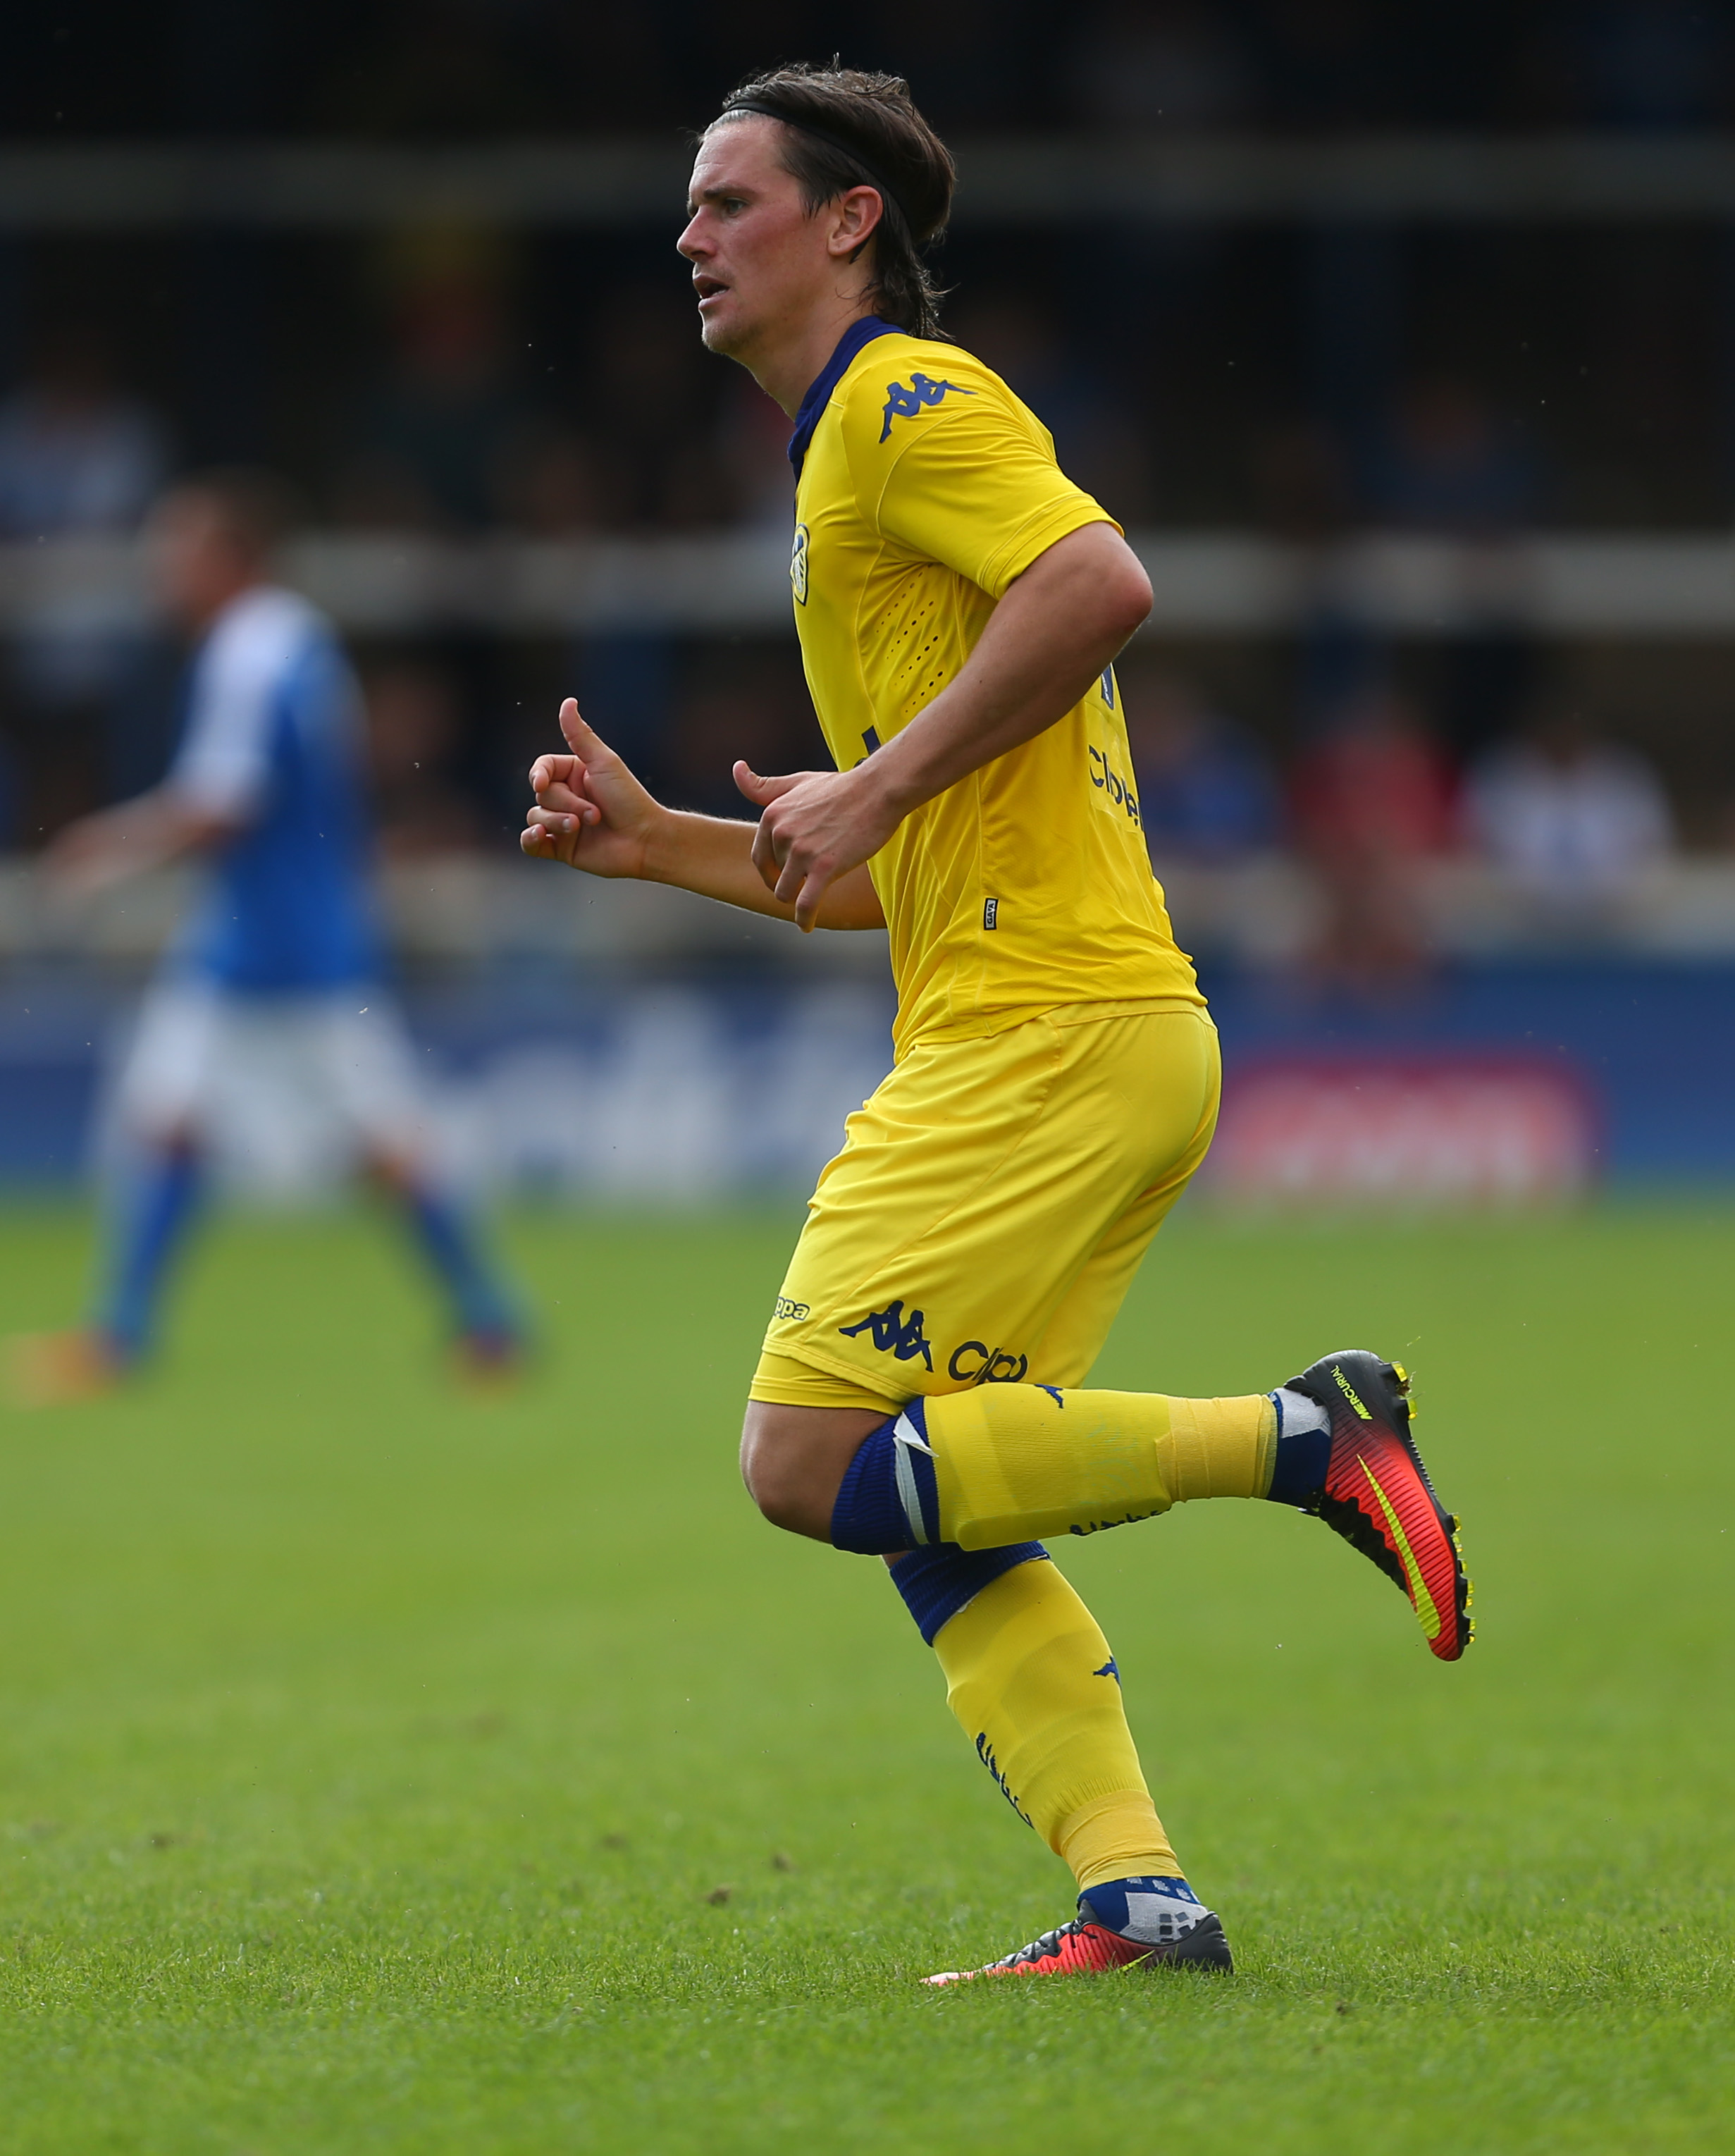 PETERBOROUGH, ENGLAND - JULY 23: Marcus Antonsson of Leeds United during the Pre-Season Friendly match between Peterborough United and Leeds United at London Road Stadium on July 23, 2016 in Peterborough, England. ()